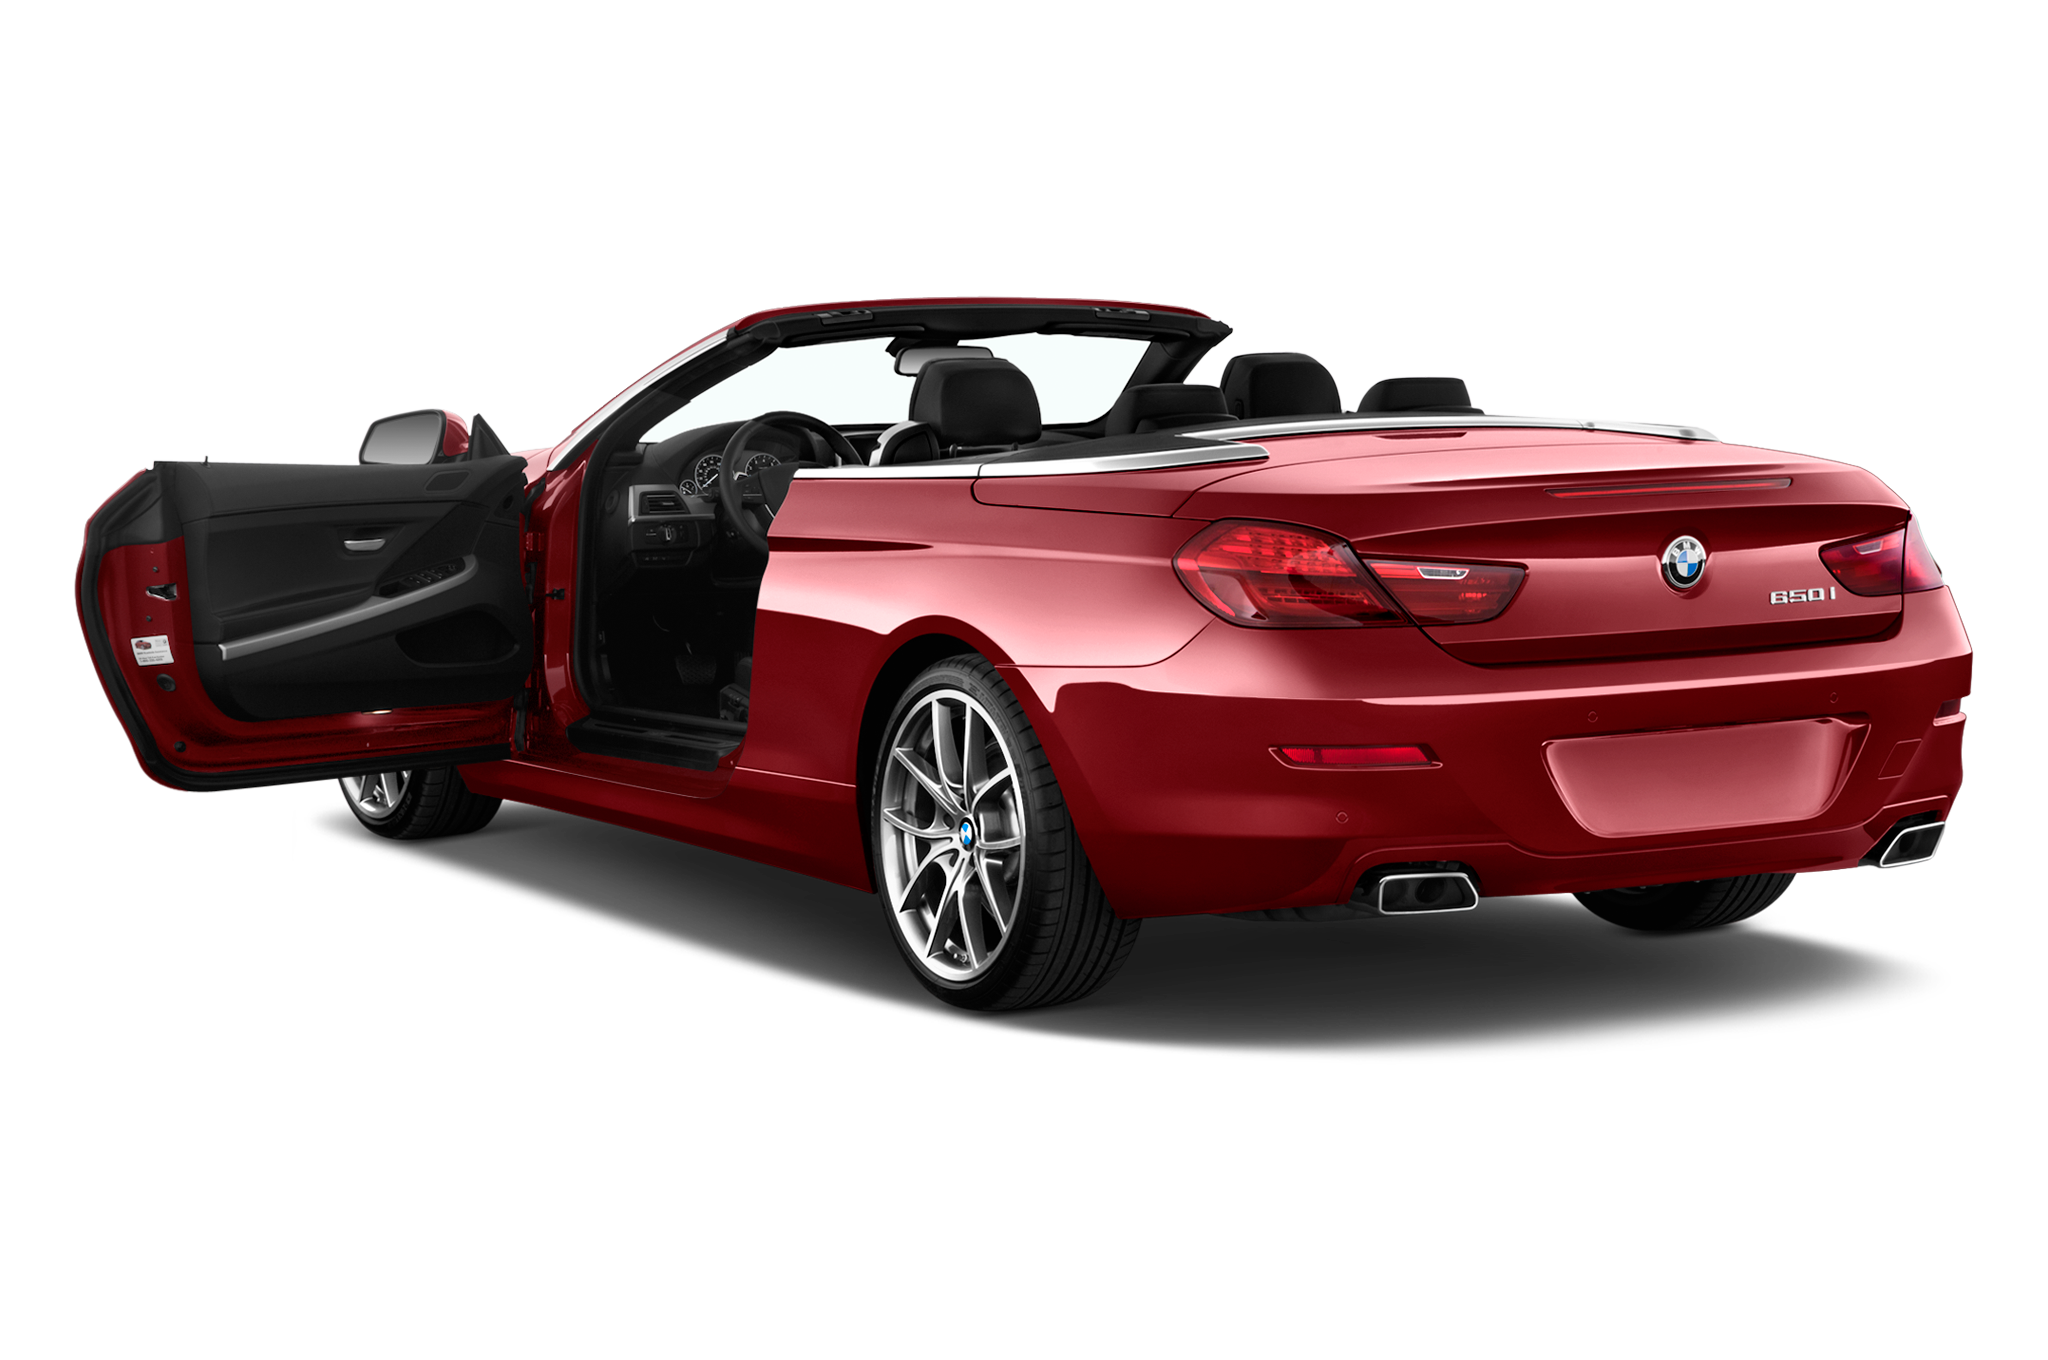 2014 bmw 640i xdrive gran coupe around the block automobile. Black Bedroom Furniture Sets. Home Design Ideas